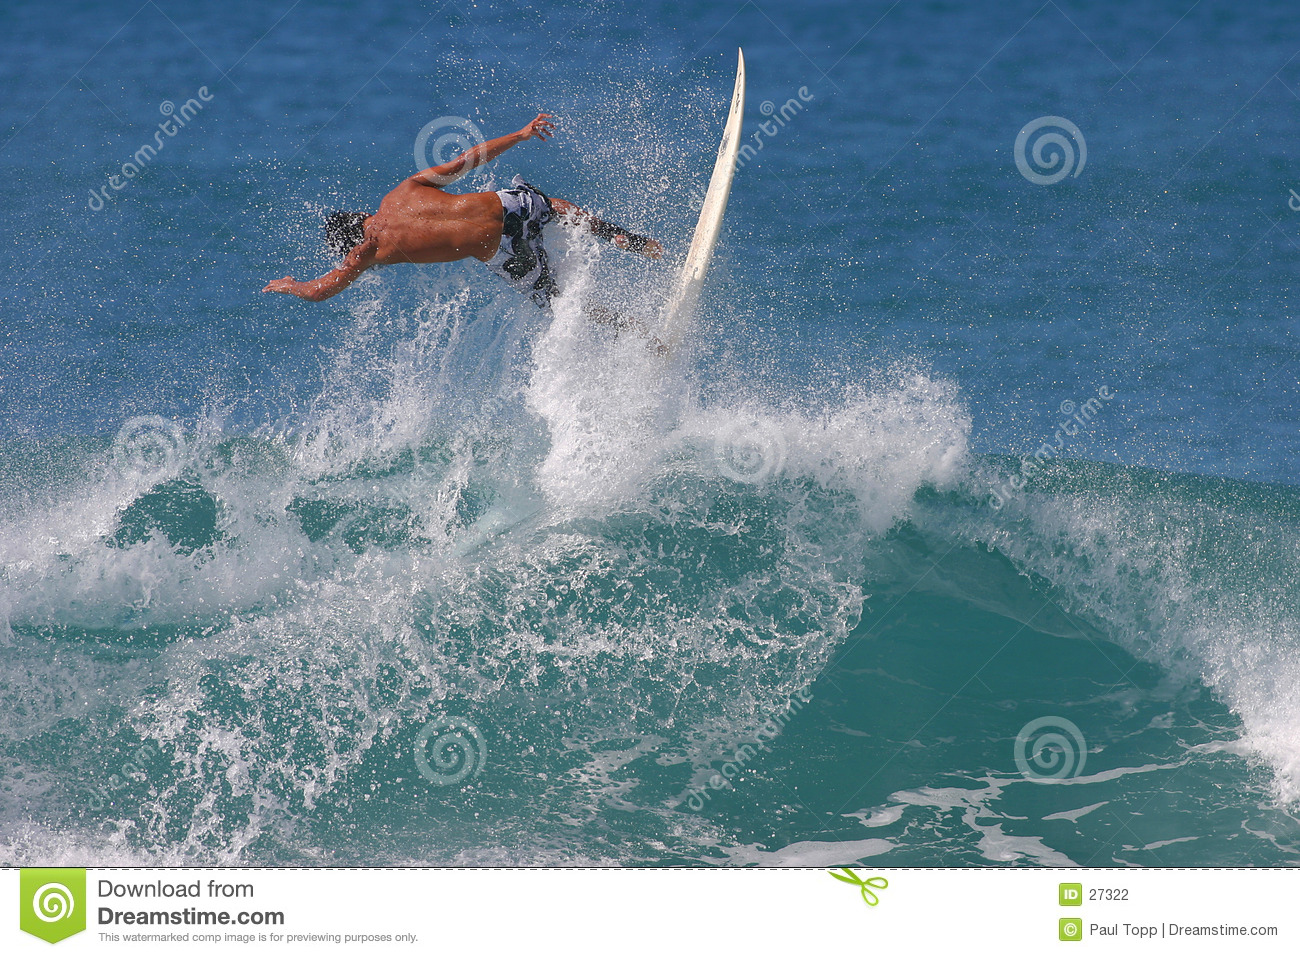 Air de surfer